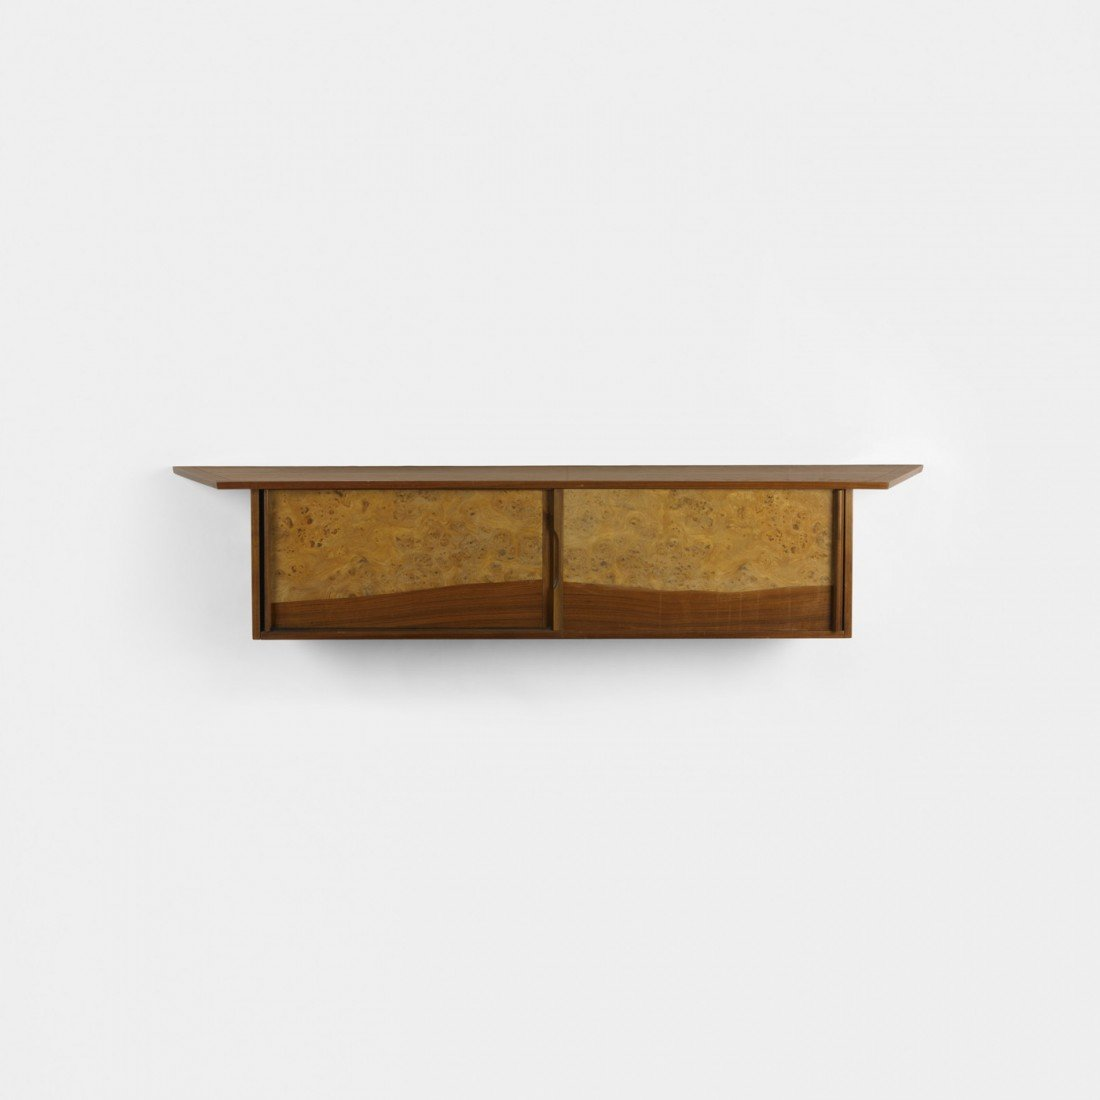 218: George Nakashima Origins wall-mounted cabinet